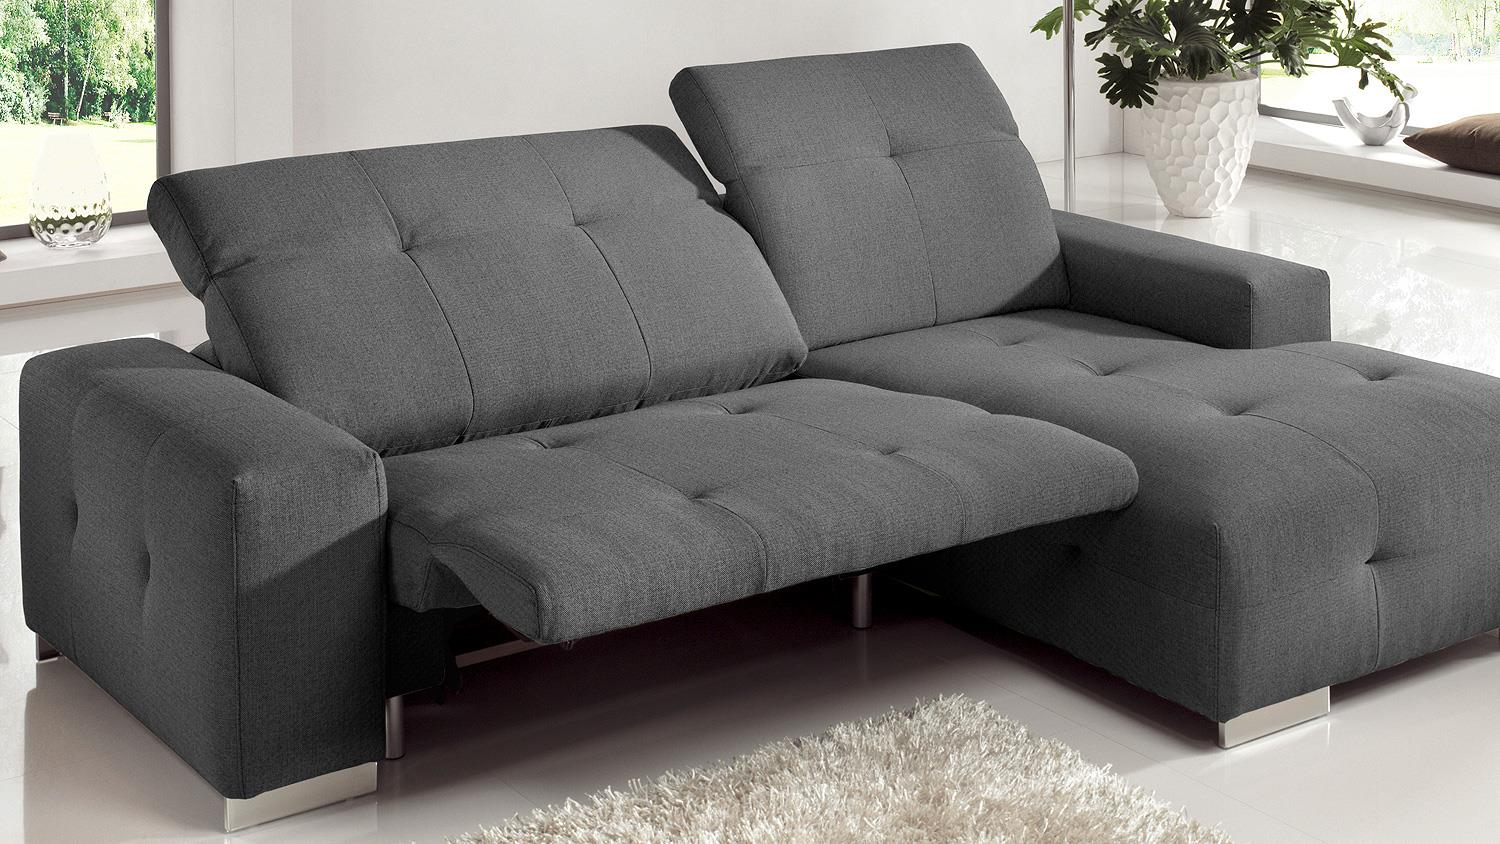 sofa mit relaxfunktion elektrisch das beste aus wohndesign und m bel inspiration. Black Bedroom Furniture Sets. Home Design Ideas